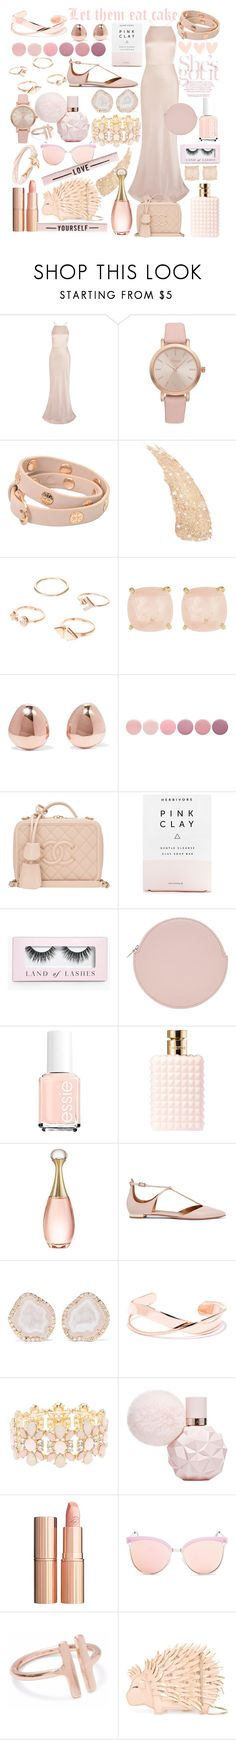 """prom style- rose gold"" by que2001 ❤ liked on Polyvore featuring Jason Wu, Vivani, Tory Burch, Ariella Collection, Monica Vinader, Deborah Lippmann, Chanel, Herbivore, Boohoo and Kara"